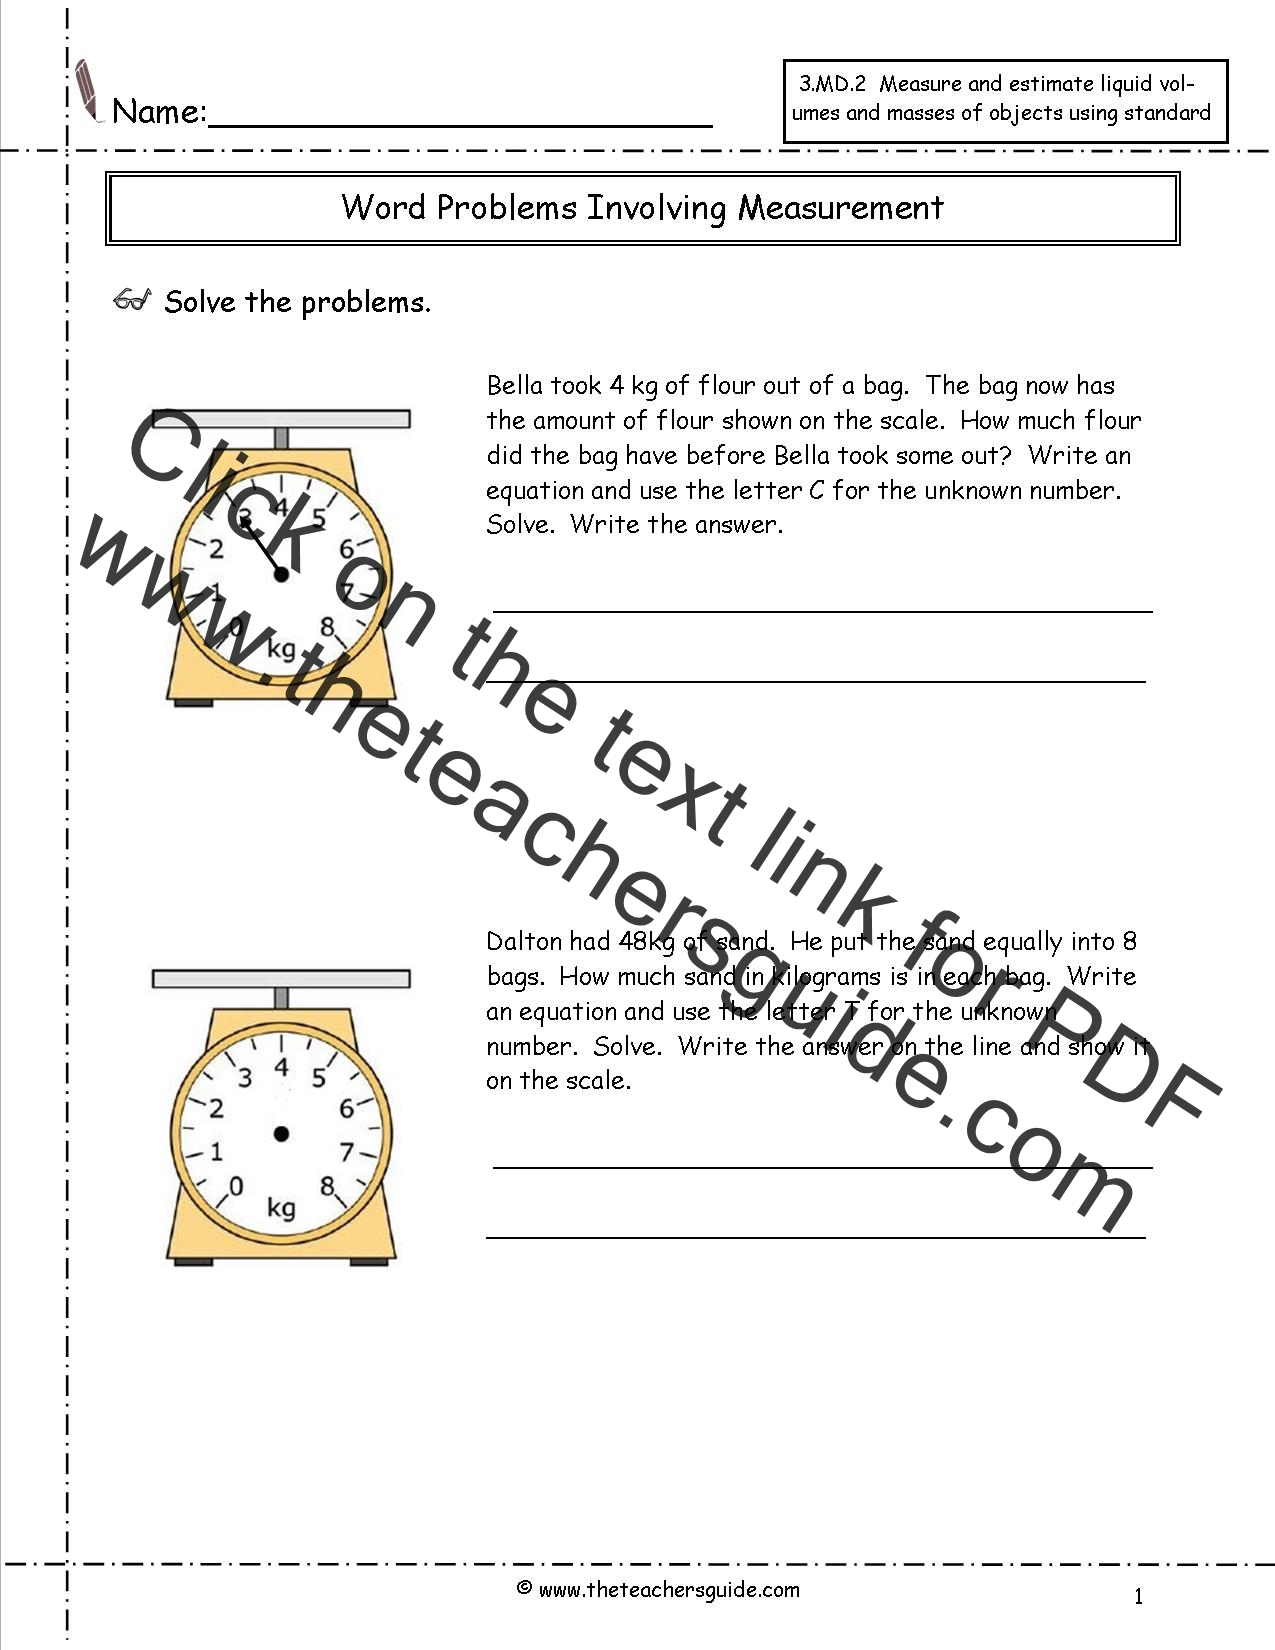 Standards Of Measurement Worksheet Answers